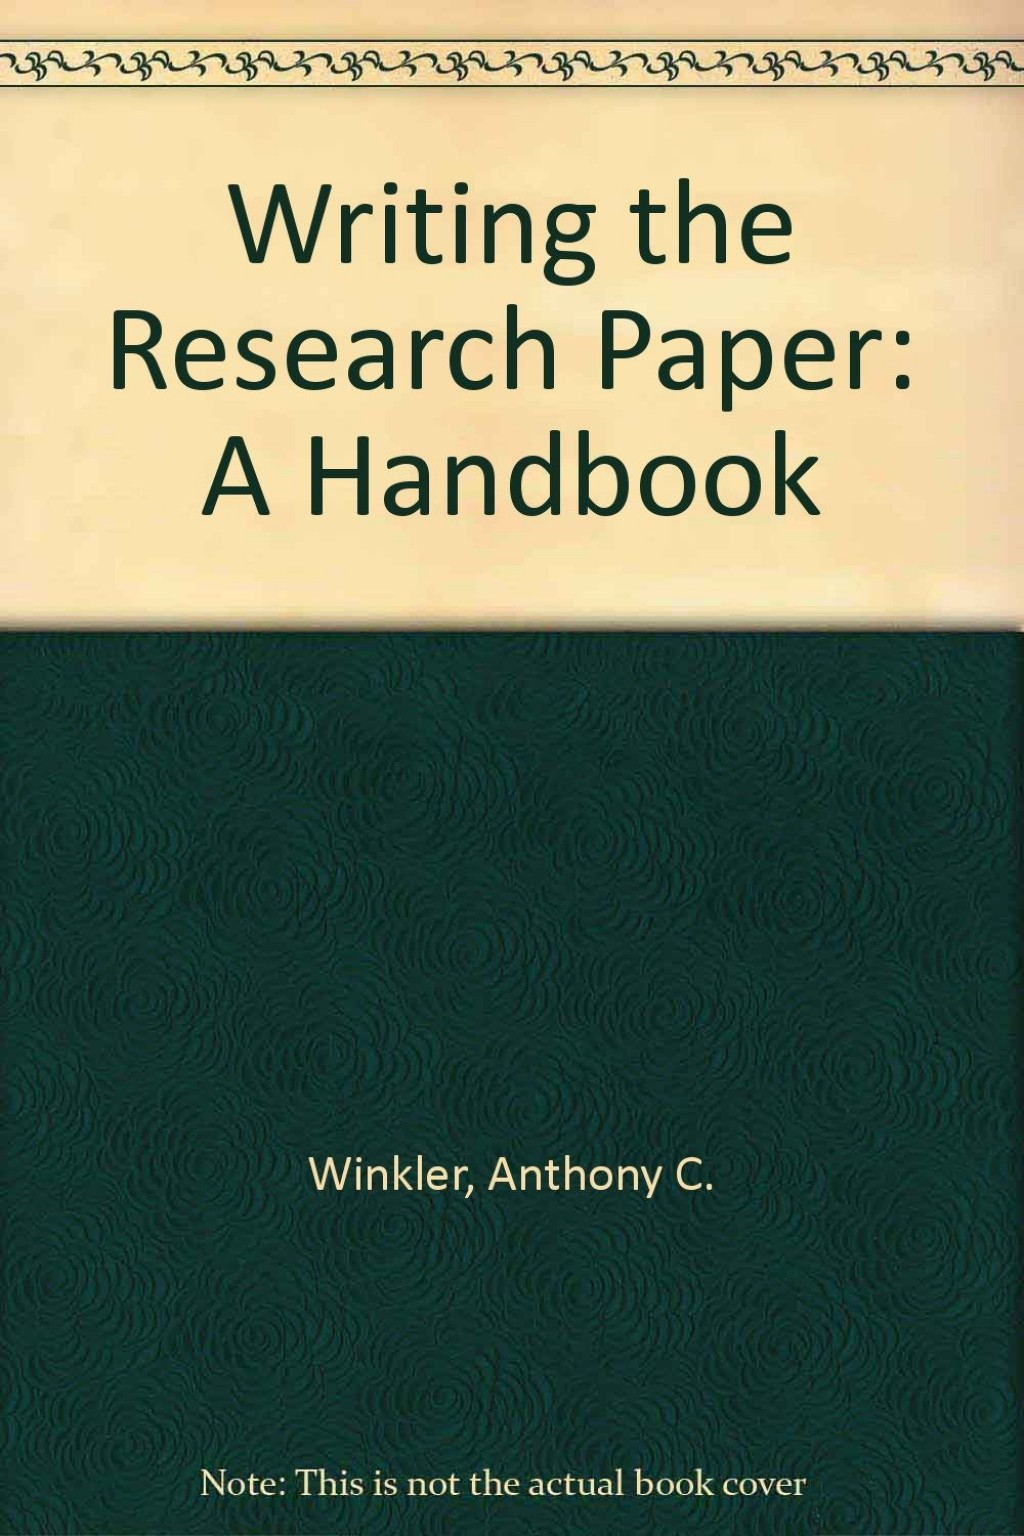 001 Research Paper 71n0iwptm6l Writing The Wonderful A Handbook 8th Edition Large